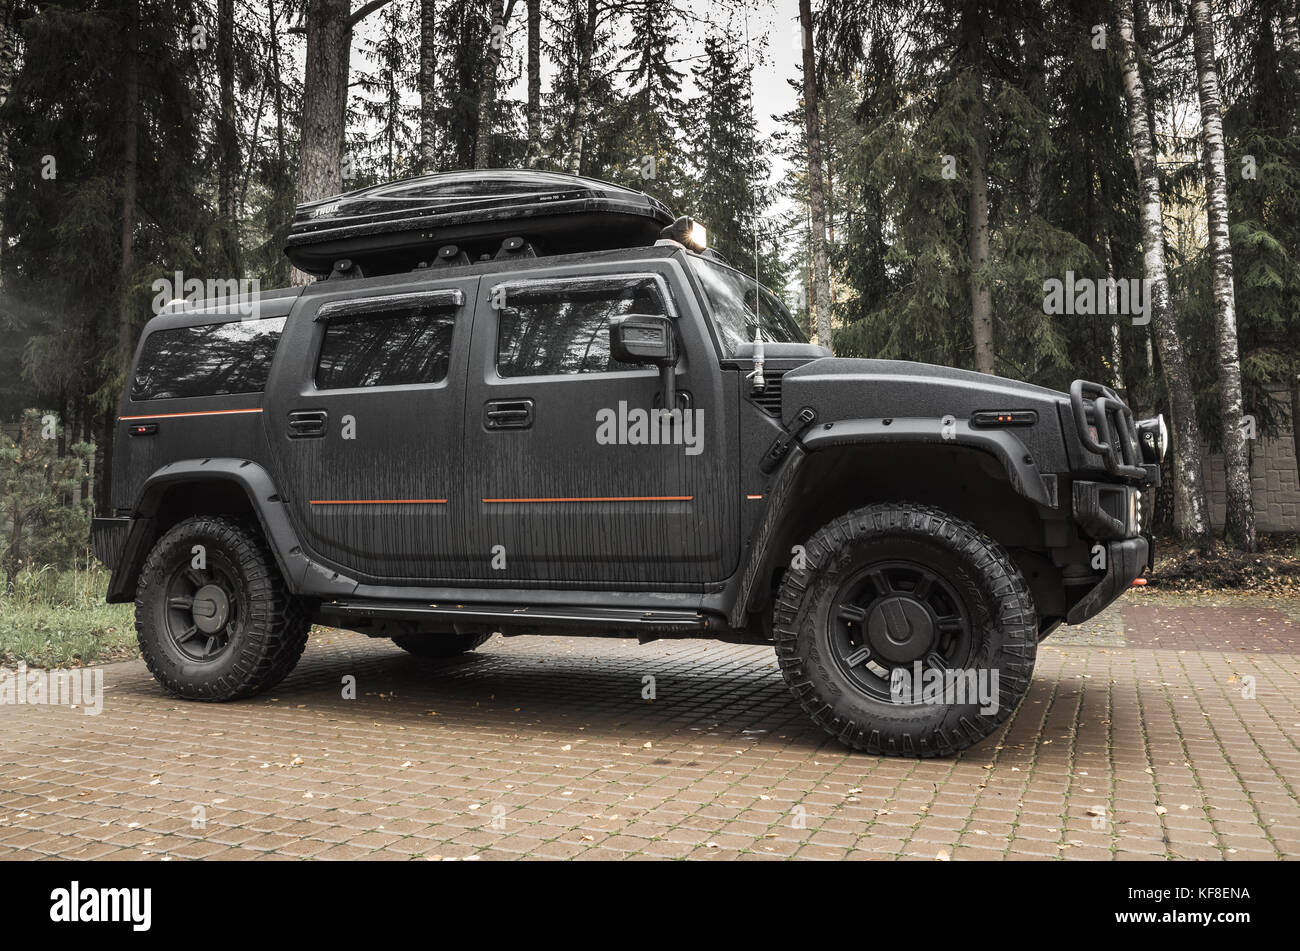 Saint-Petersburg, Russia - October 8, 2017: Black Hummer H2 car stands on rural parking lot in Russian countryside, - Stock Image